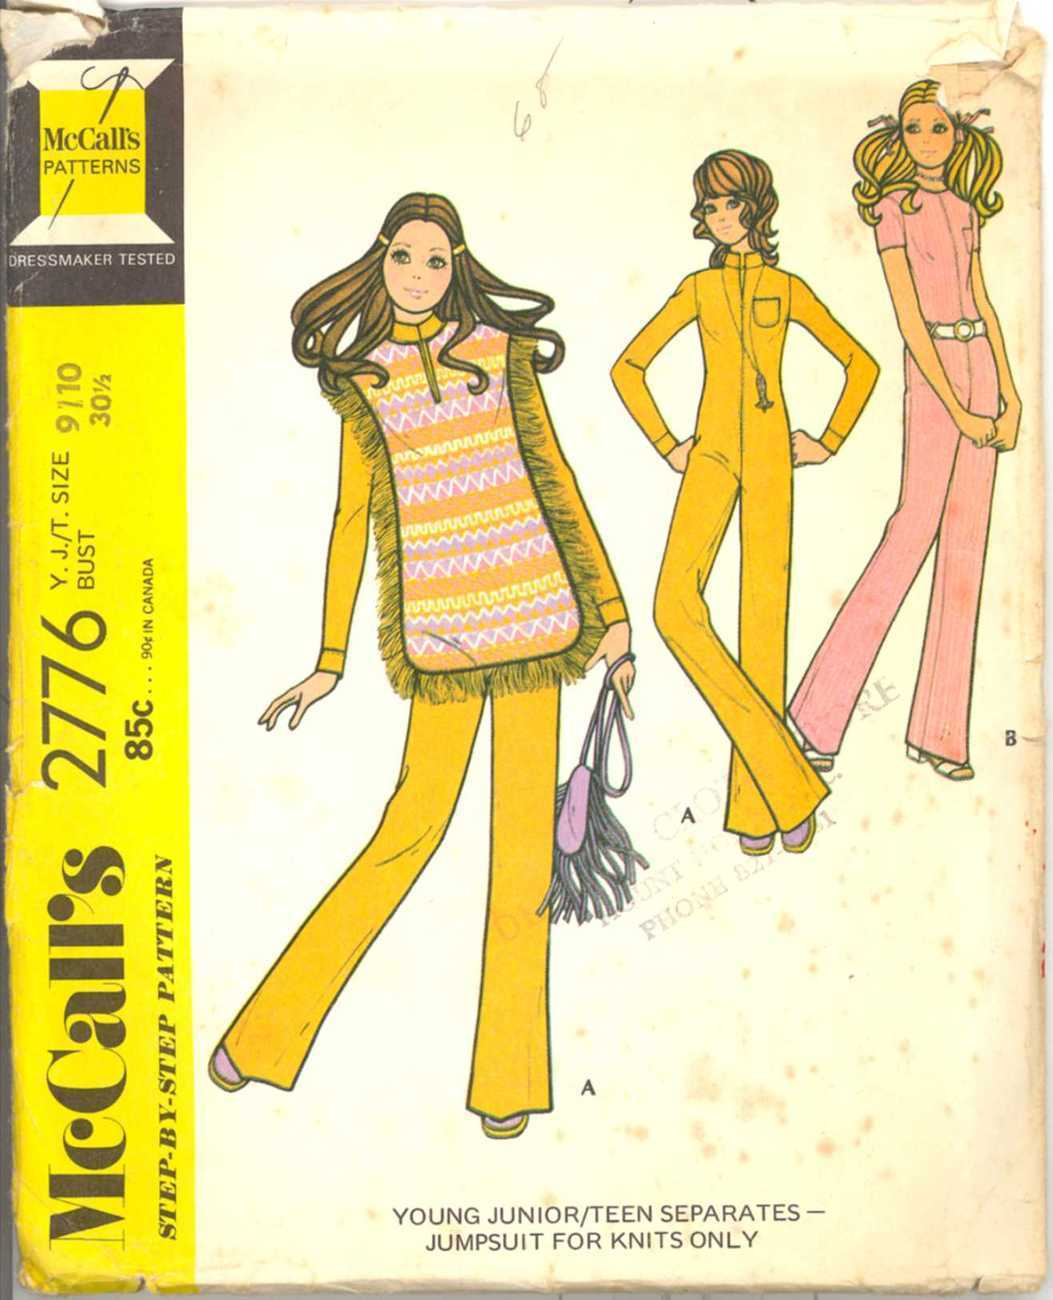 1970s Jumpsuit Poncho Hippie Mod McCalls 2776 Bust 30 Boho Sewing Pattern McCall's